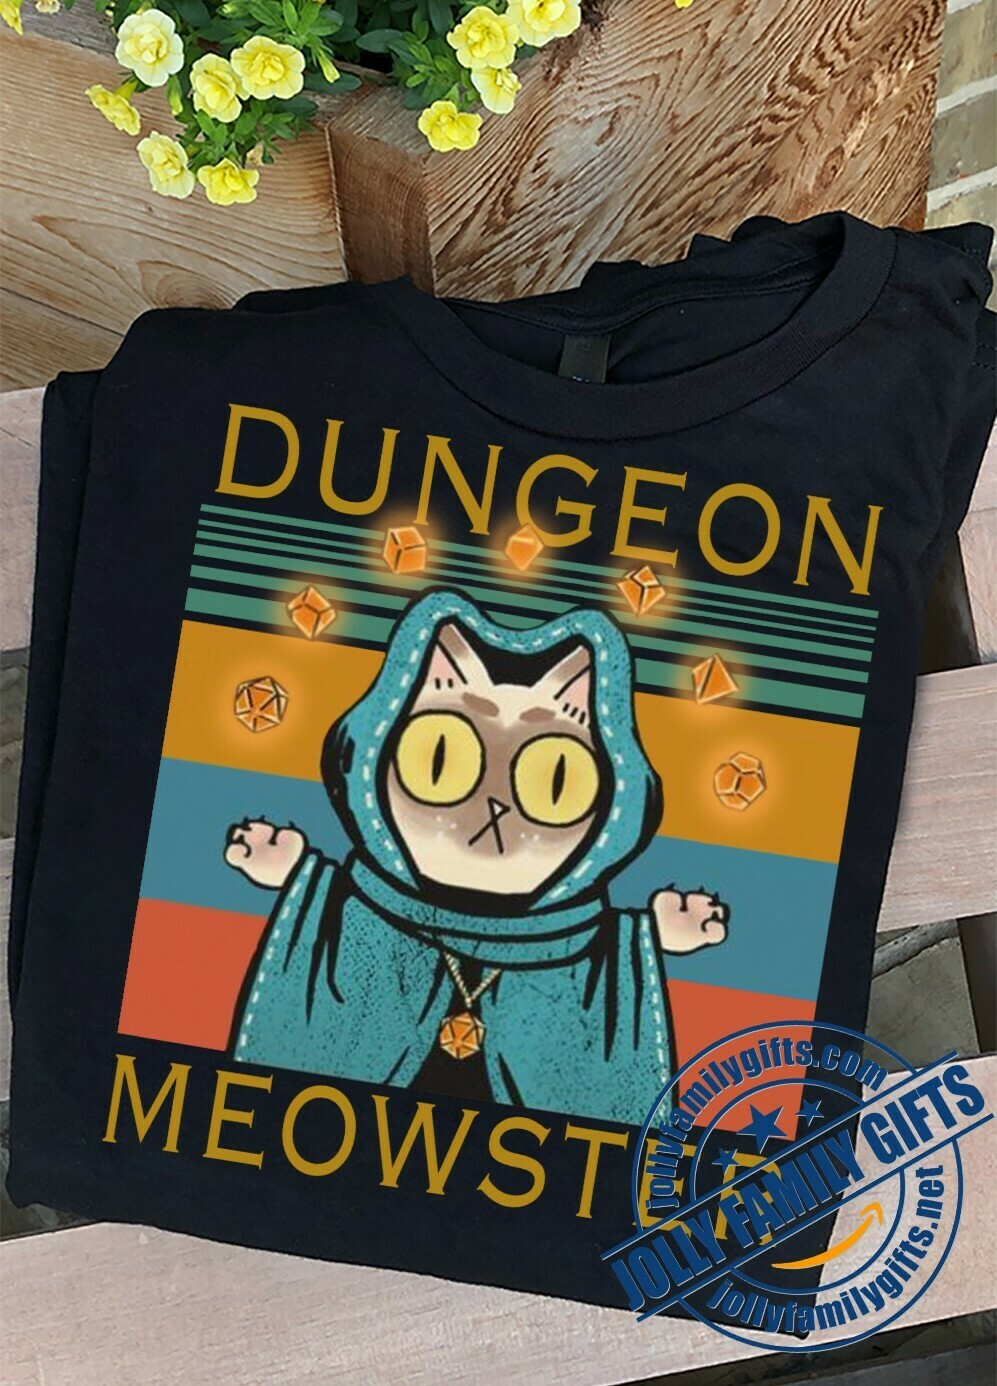 Dungeon Meowster Tabletop RPG Geek Roleplay Game for Men Women Cat Game Lover Unisex T-Shirt Hoodie Sweatshirt Sweater Plus Size for Ladies Women Men Kids Youth Gifts Tee Jolly Family Gifts